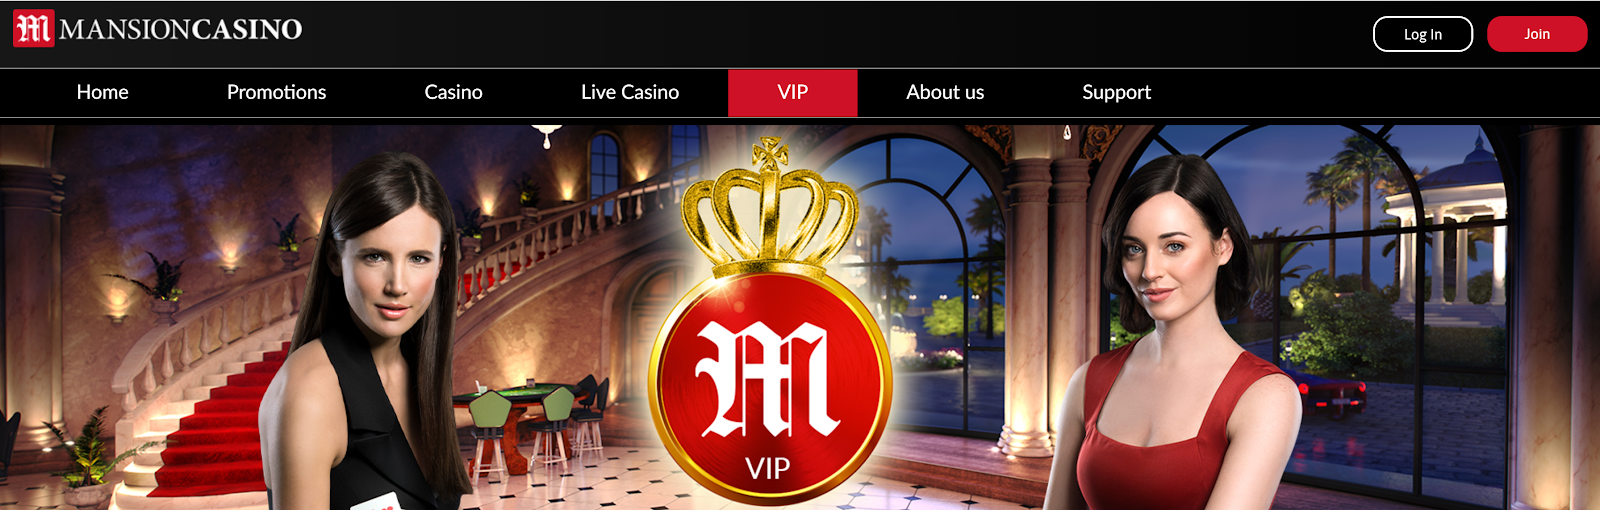 Mansion Casino has one of best slots bonus packages of any UK gambling site